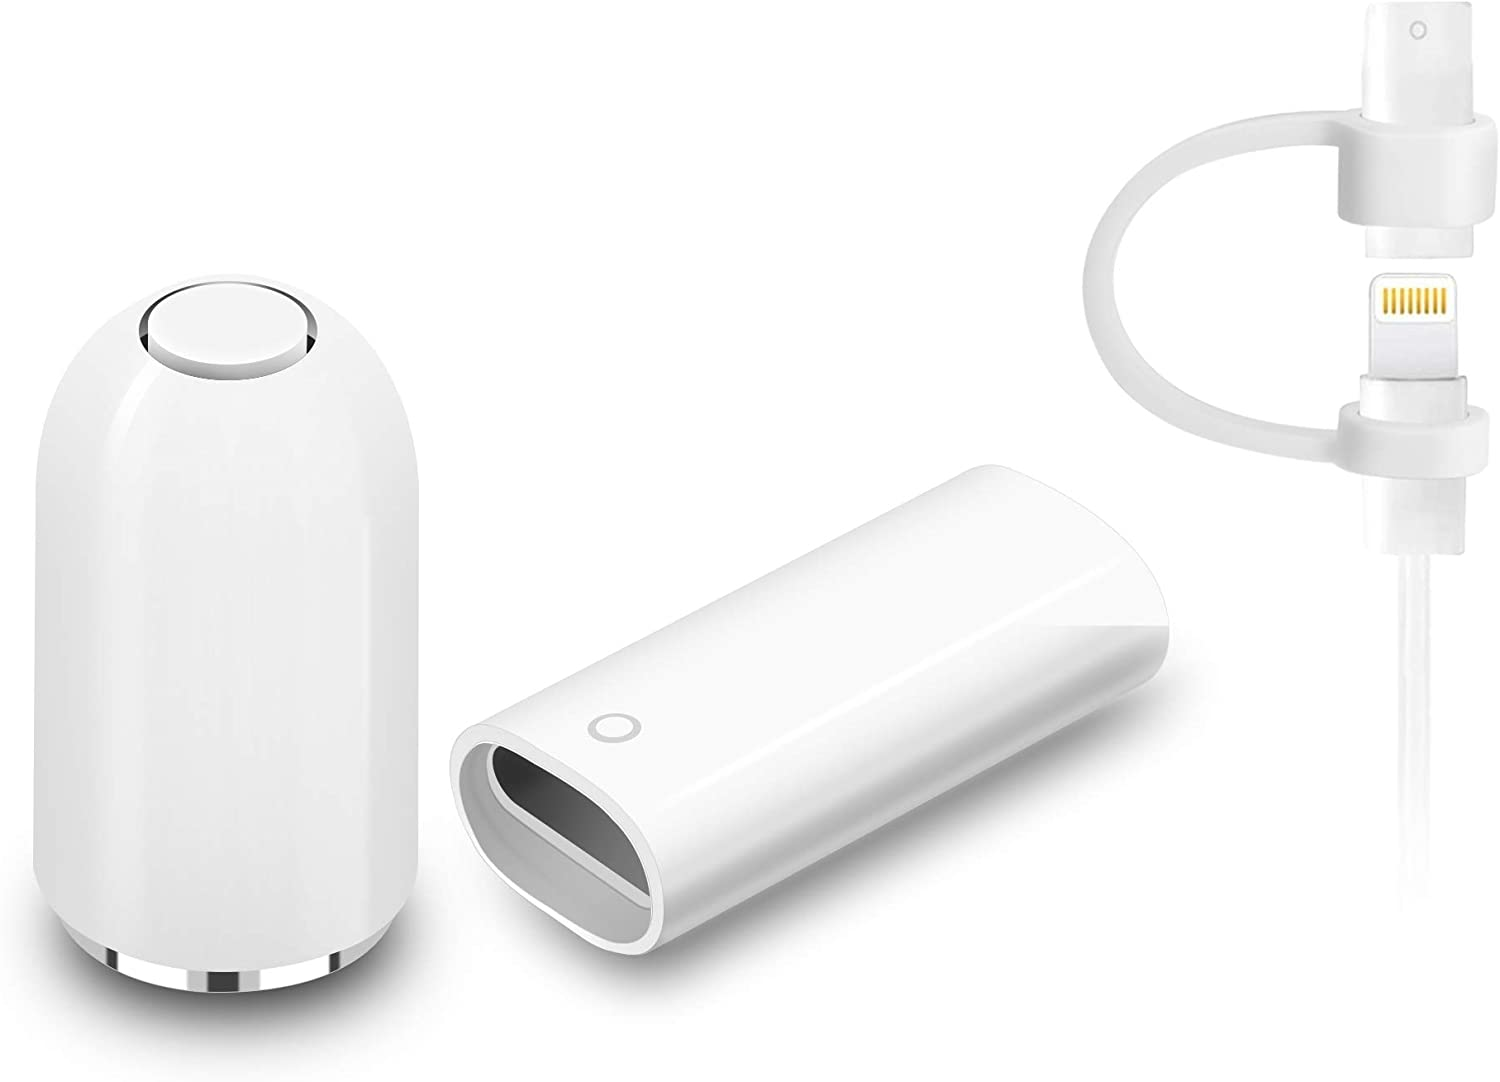 Magnetic Replacement Caps for Apple Pencil 1st Generation - with Charging Adapter (Female to Female Connector) and a Silicone Cable Adapter Tether Stylus Protective Cover Caps for iPad Pencil (White)